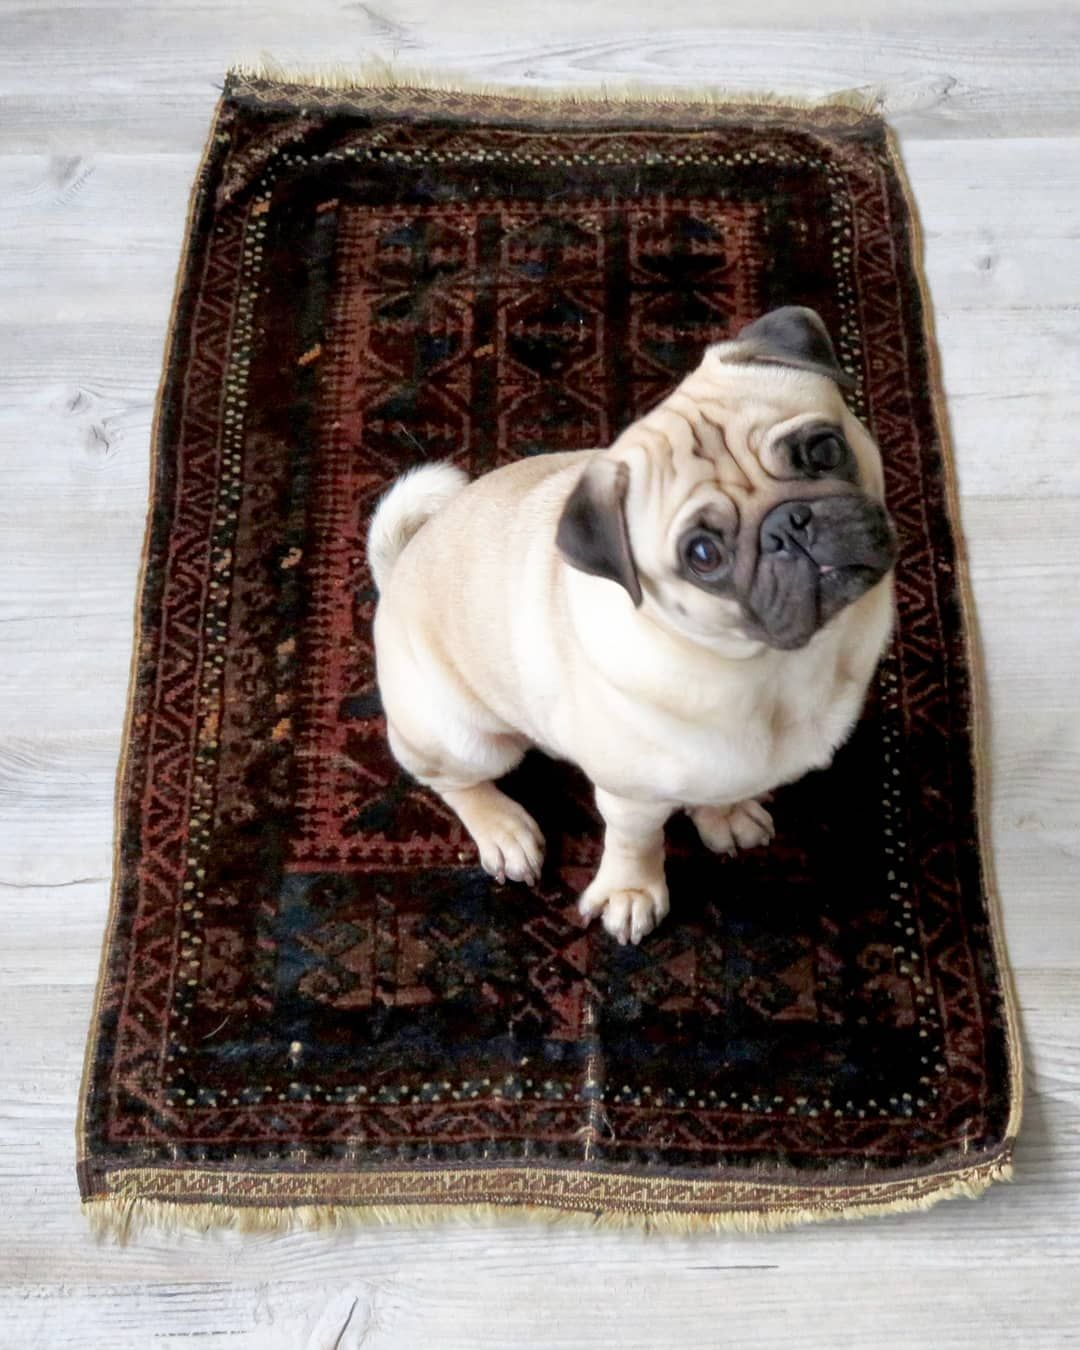 Bertje Modeling Another Vintage Persian Or Iranian Rug Or Wall Hanging In Warm Earth Tones Persianrug Iraniancarpet S Iranian Rugs Pugs Carpet Runner